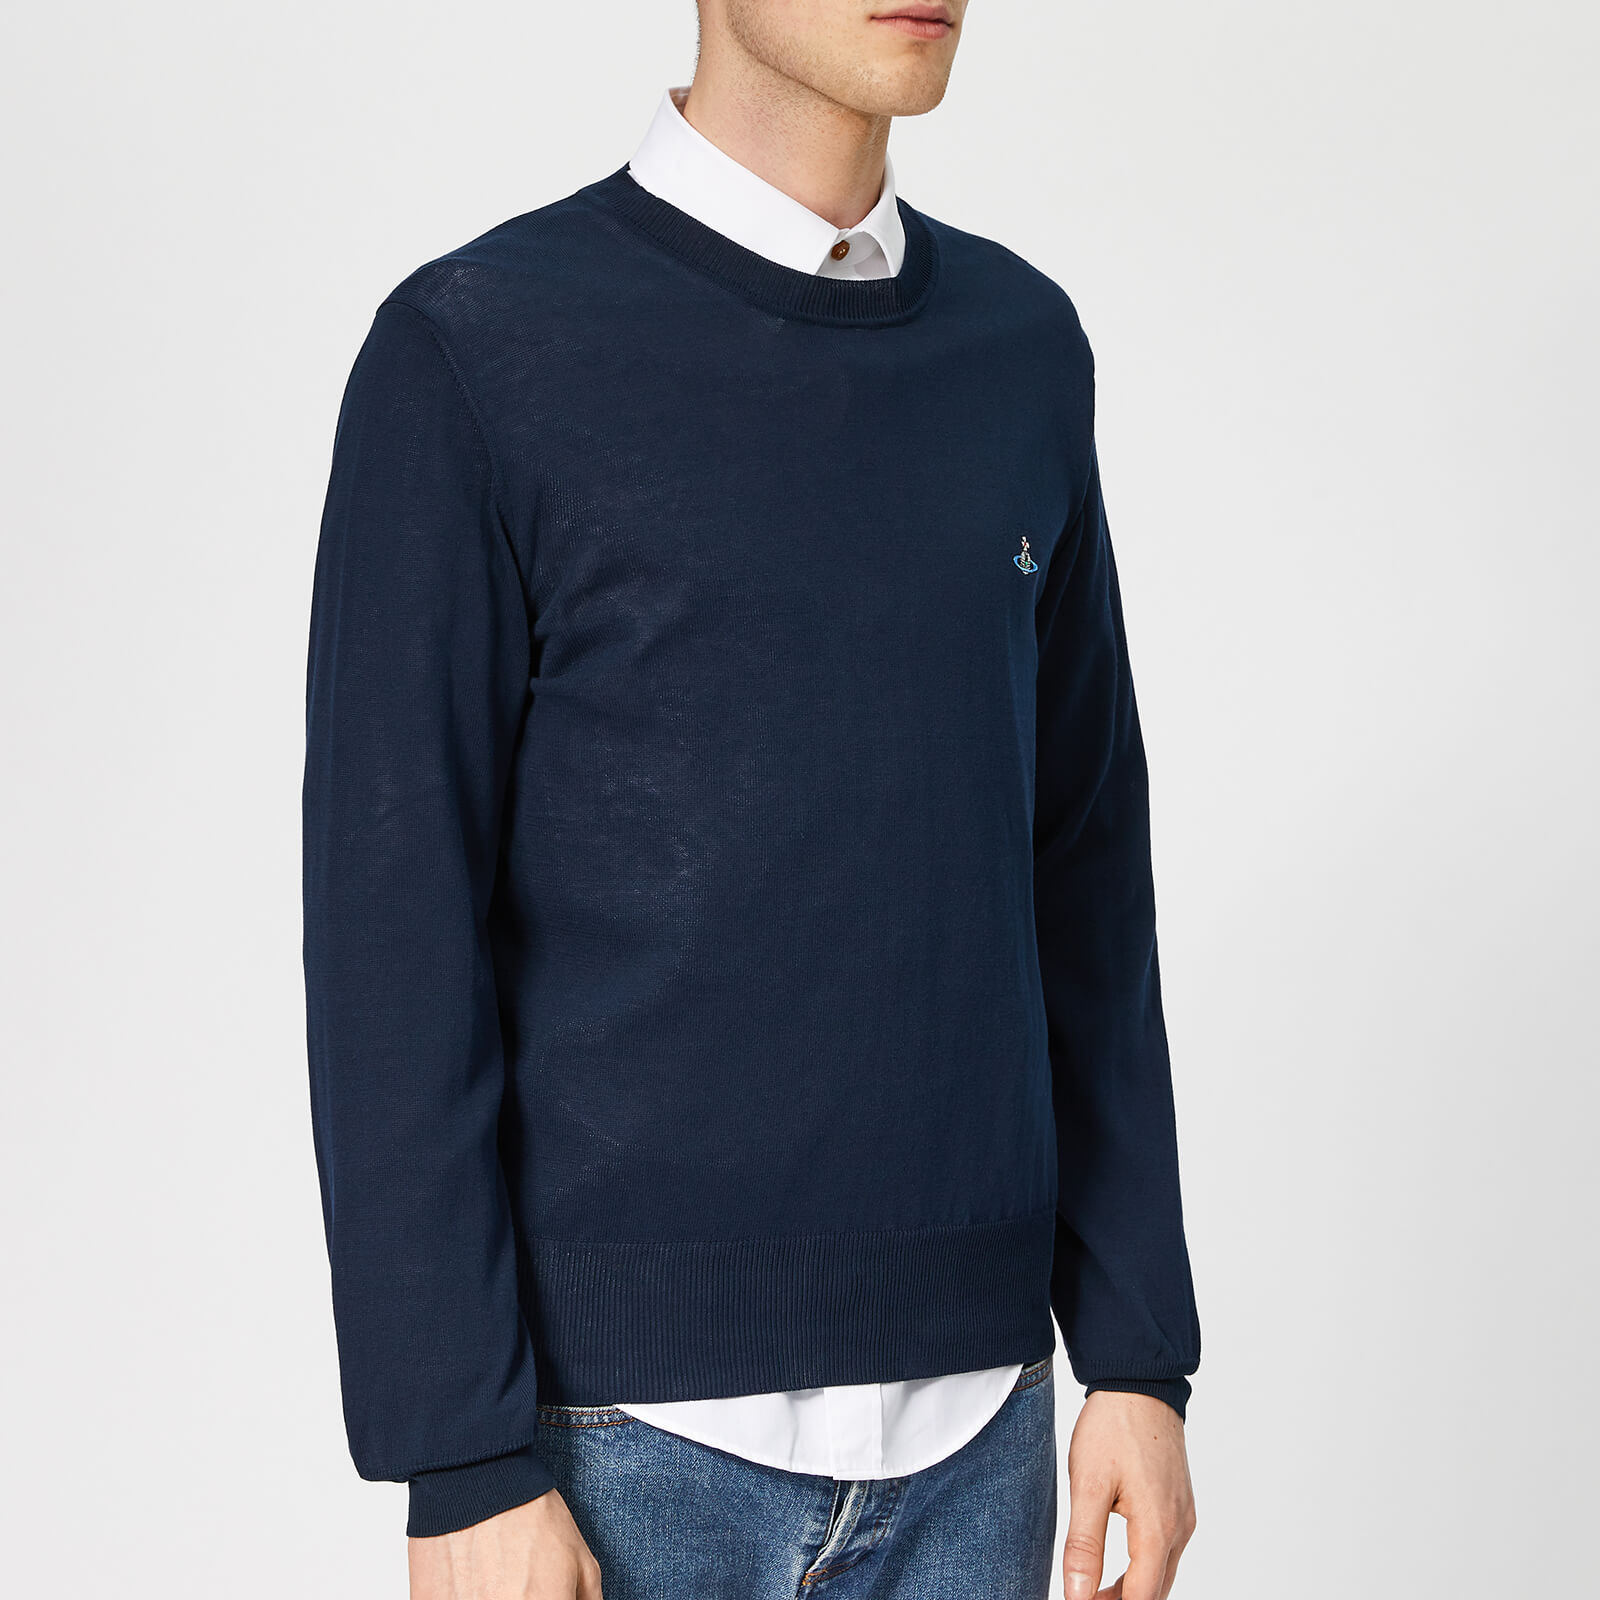 c9ce85f534262 Vivienne Westwood Men s Classic Crew Neck Knit - Navy - Free UK Delivery  over £50